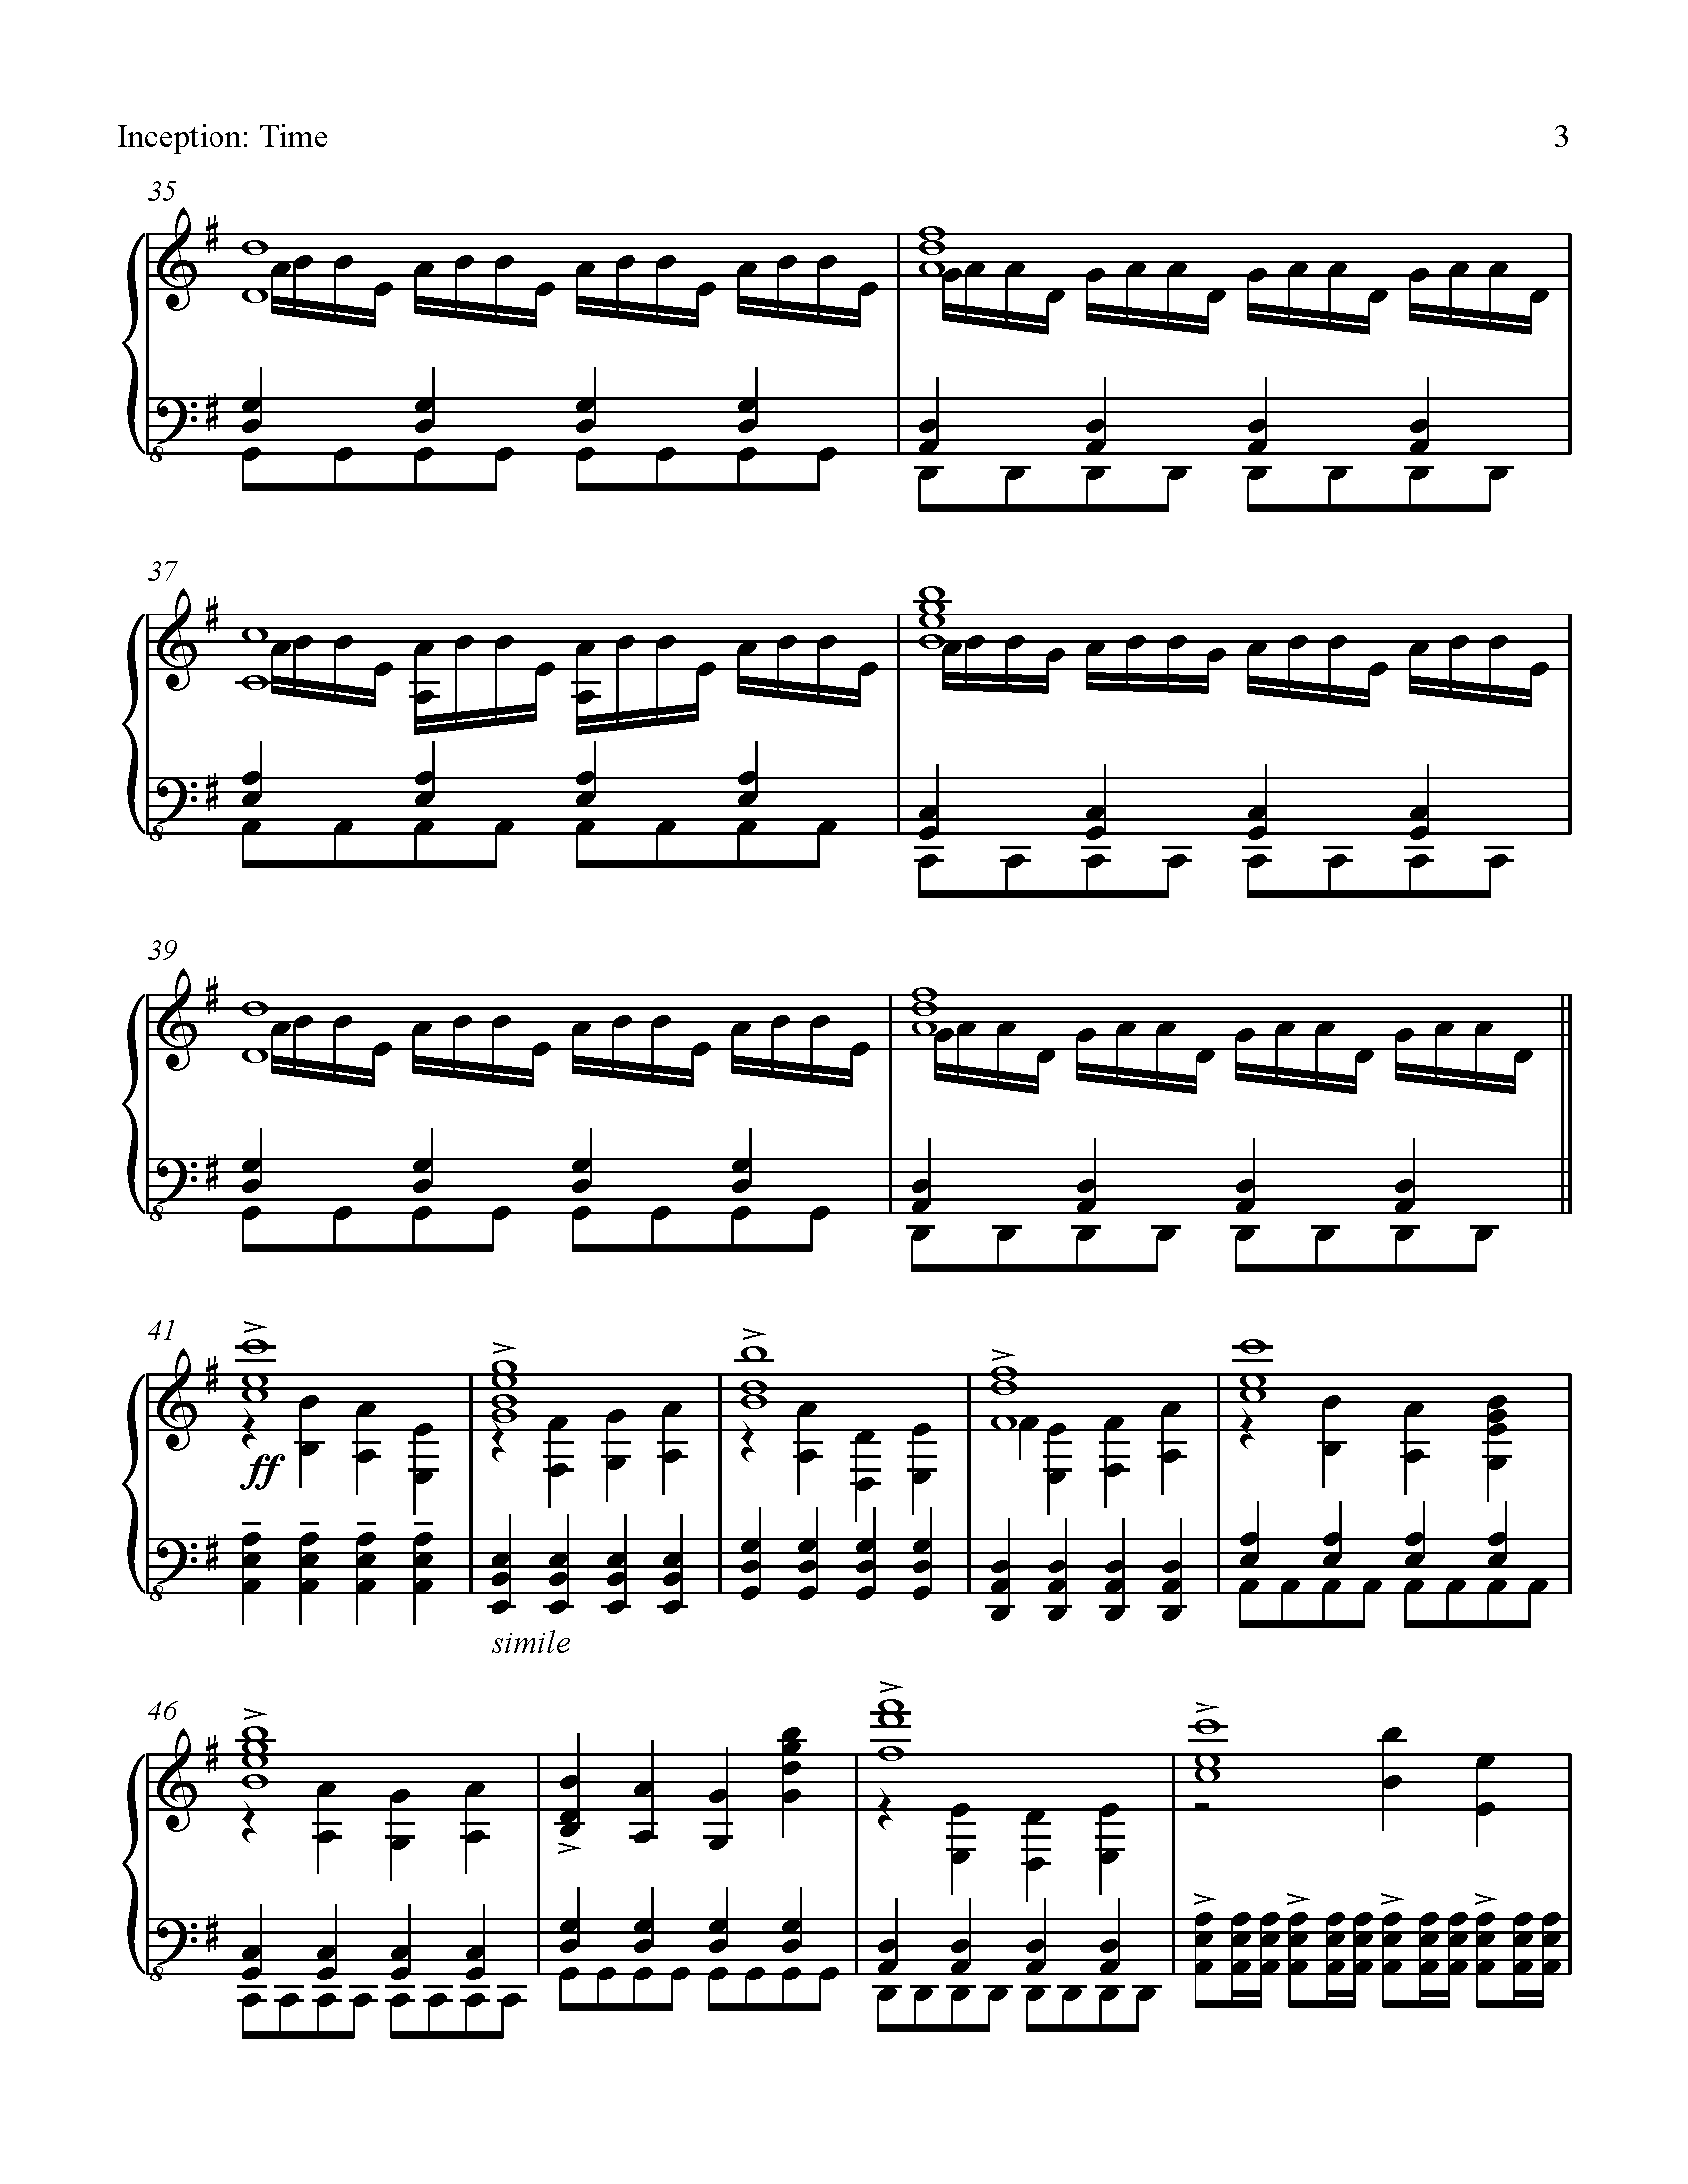 Sheet music for time from inception composed by hans for Hans zimmer time